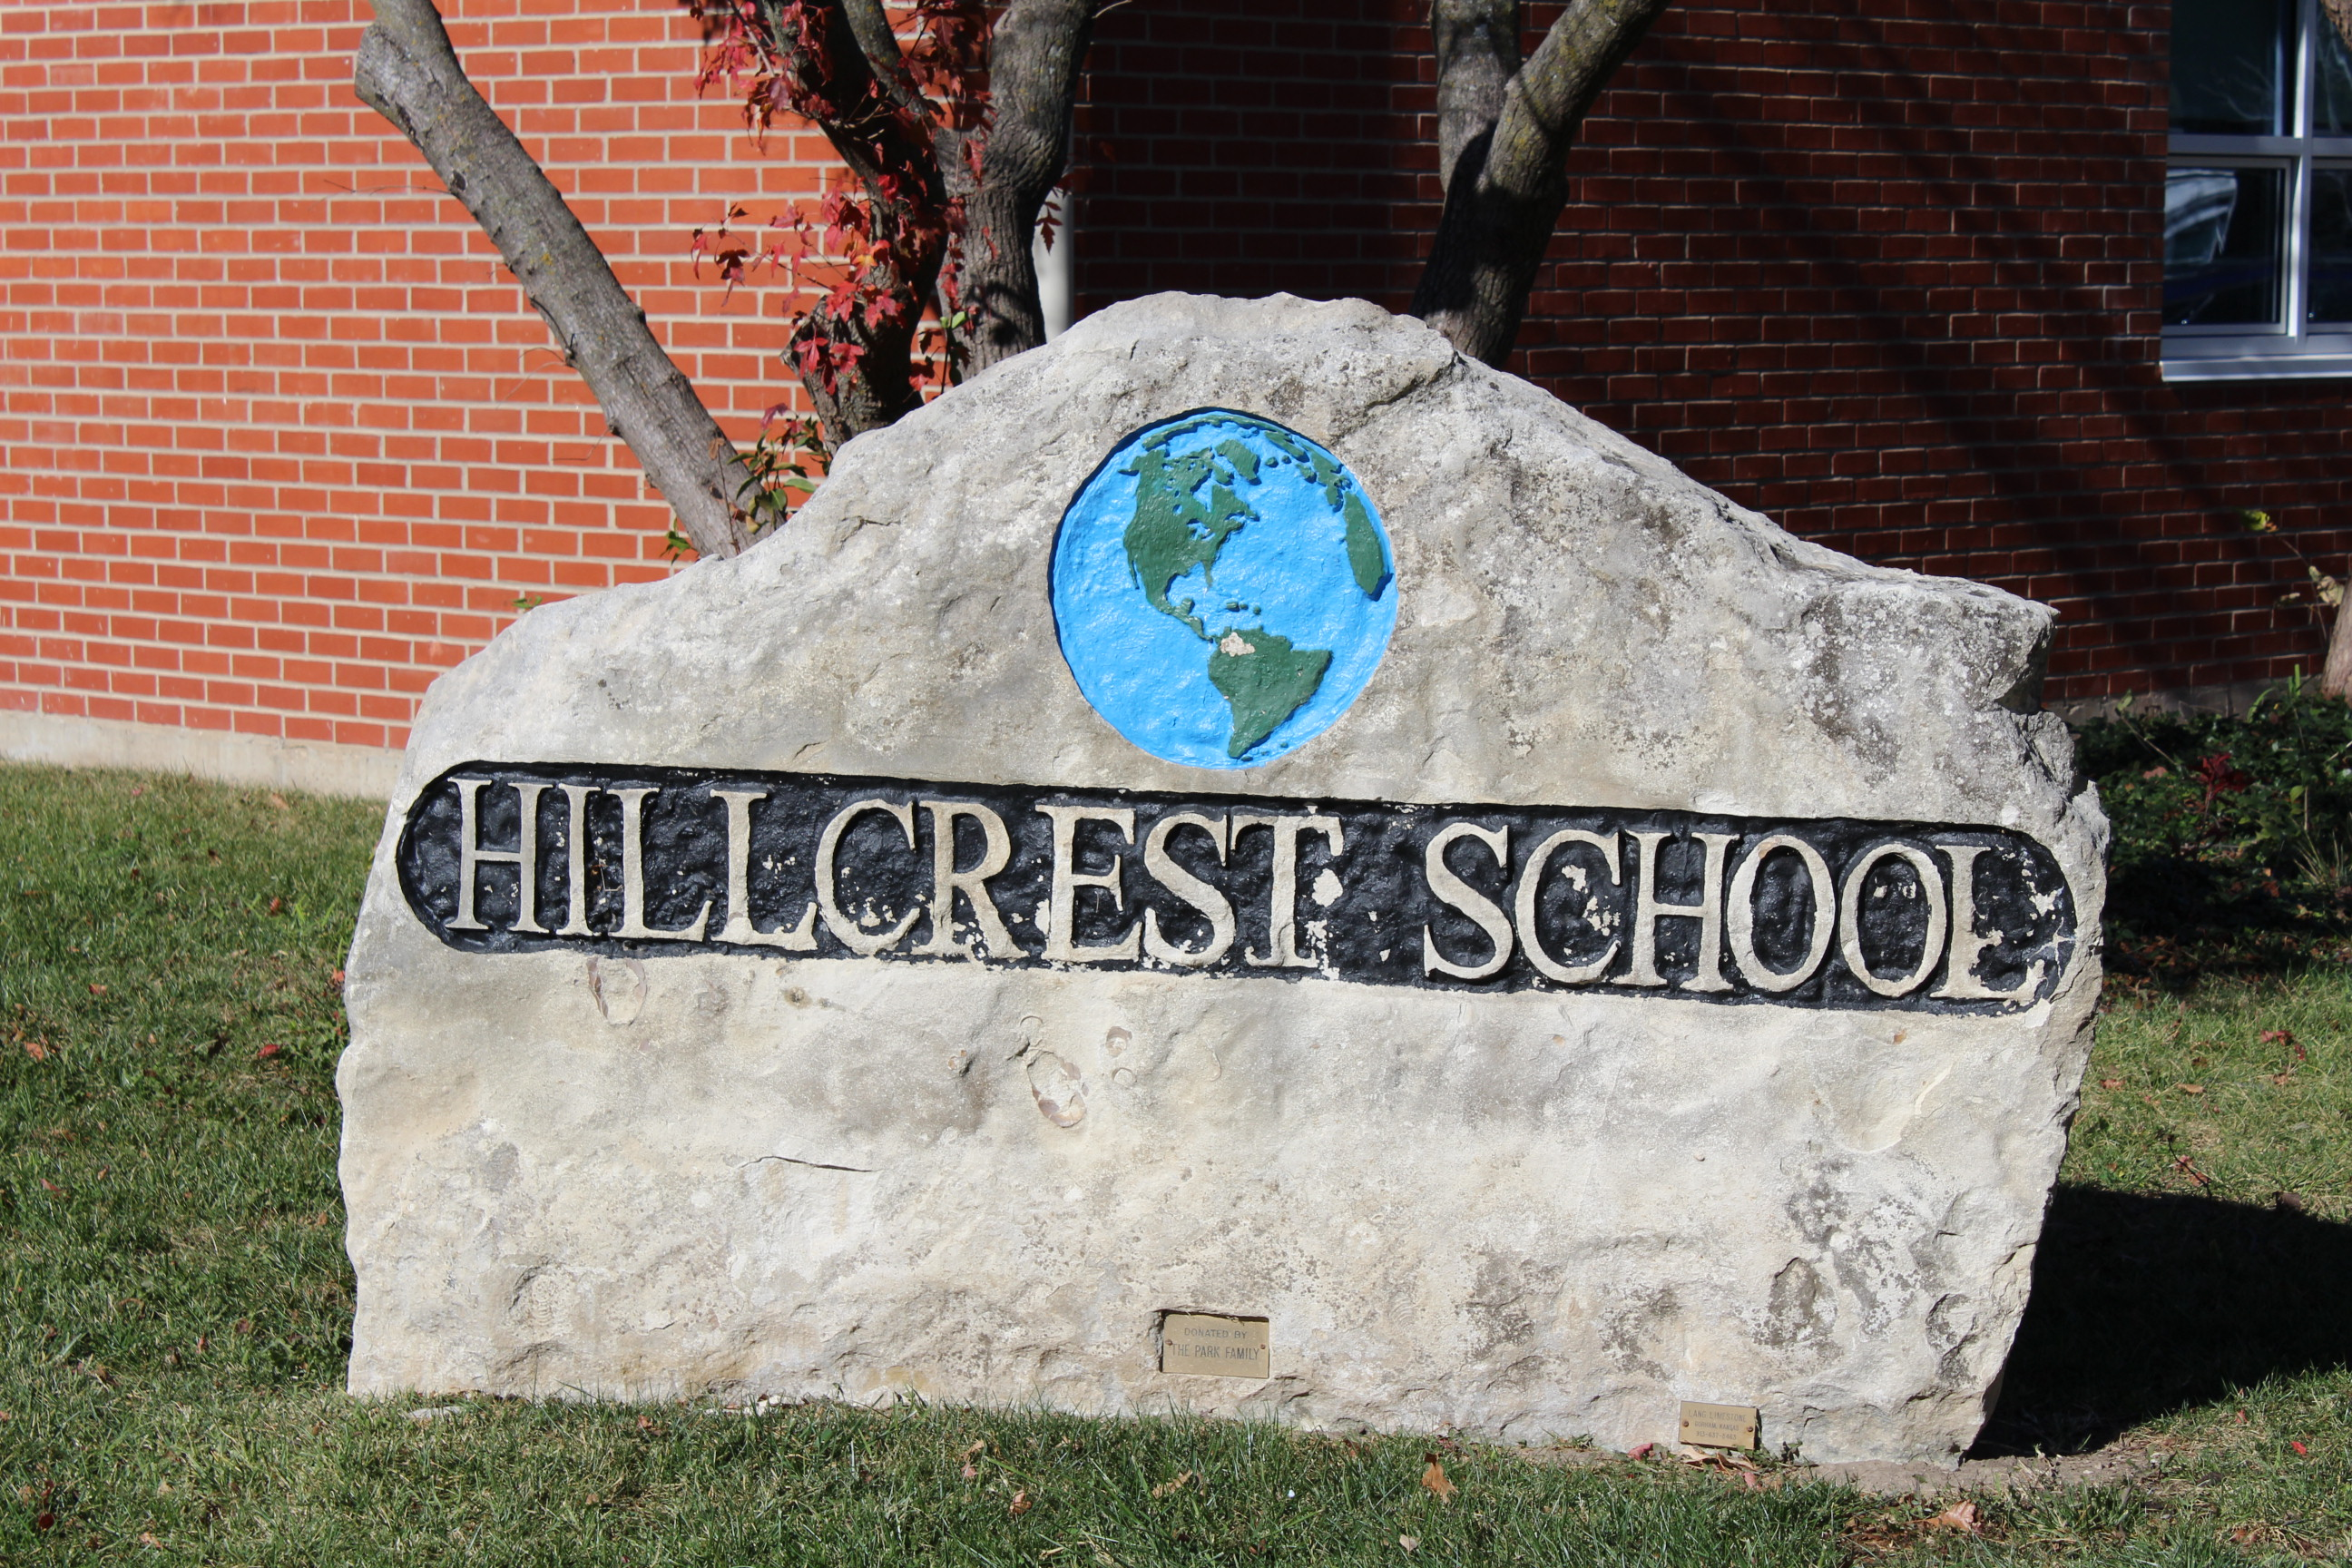 Hillcrest Elementary School sign (Photo by J. Schafer)